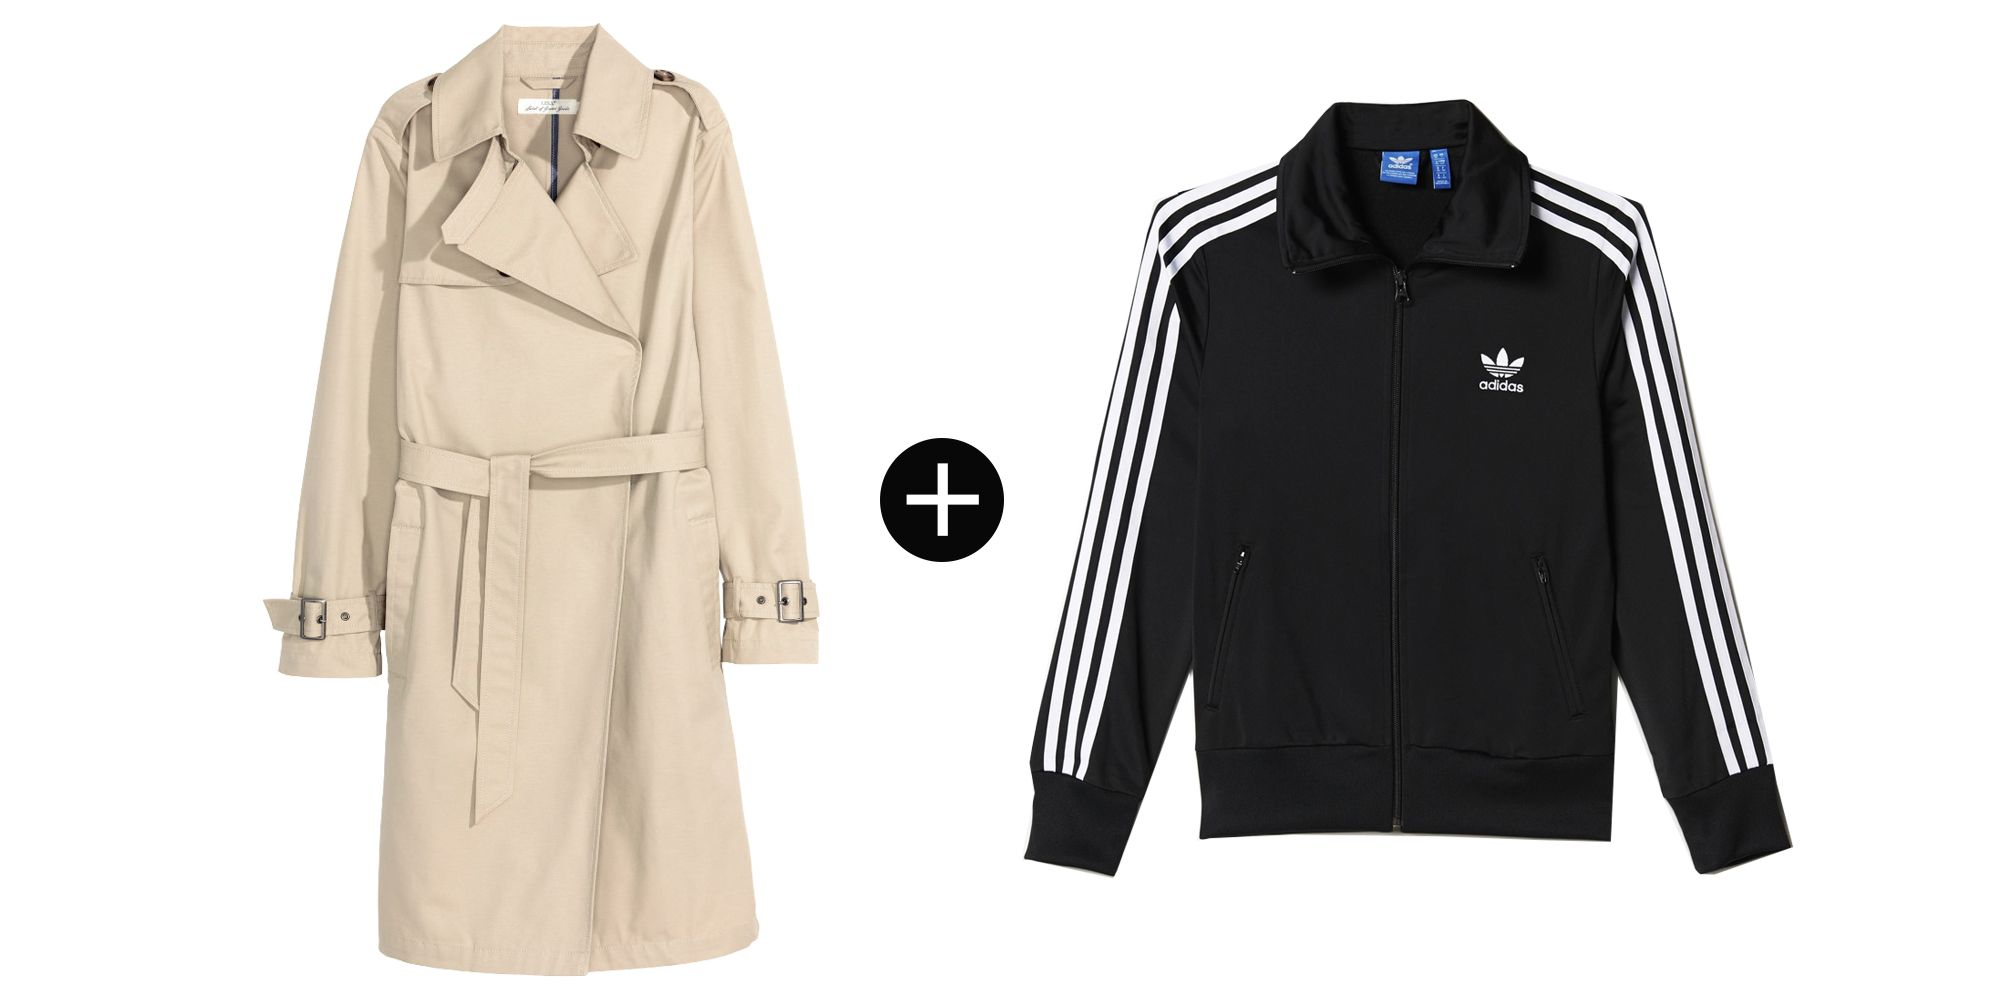 "<p>H&M Trench Coat, $60; <a href=""http://www.hm.com/us/product/37482?article=37482-A"" target=""_blank"">hm.com</a></p><p>Adidas Firebird Track Jacket, $70; <a href=""http://www.adidas.com/us/firebird-track-jacket/AJ8416.html"" target=""_blank"">adidas.com</a></p>"